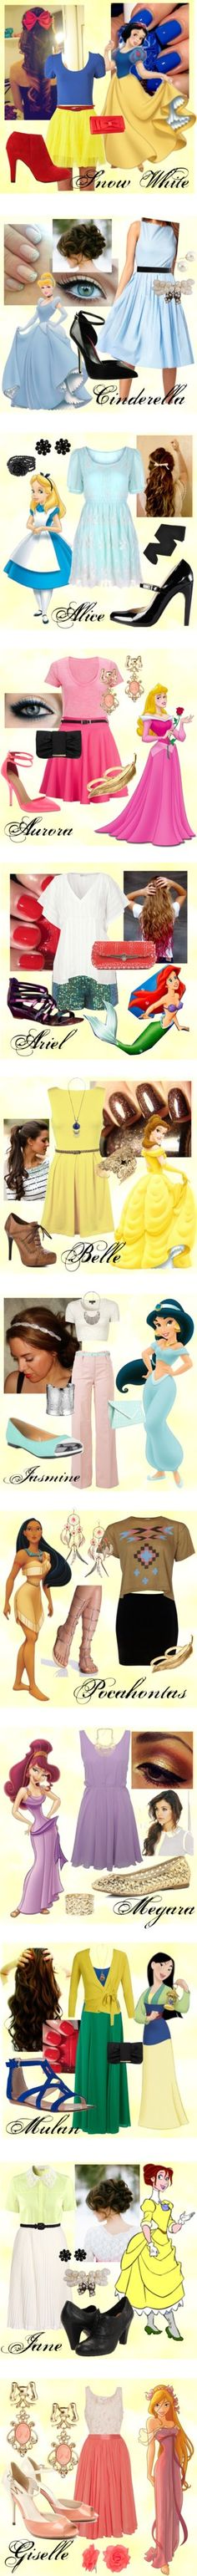 Next semester can I just dress like a disney character?